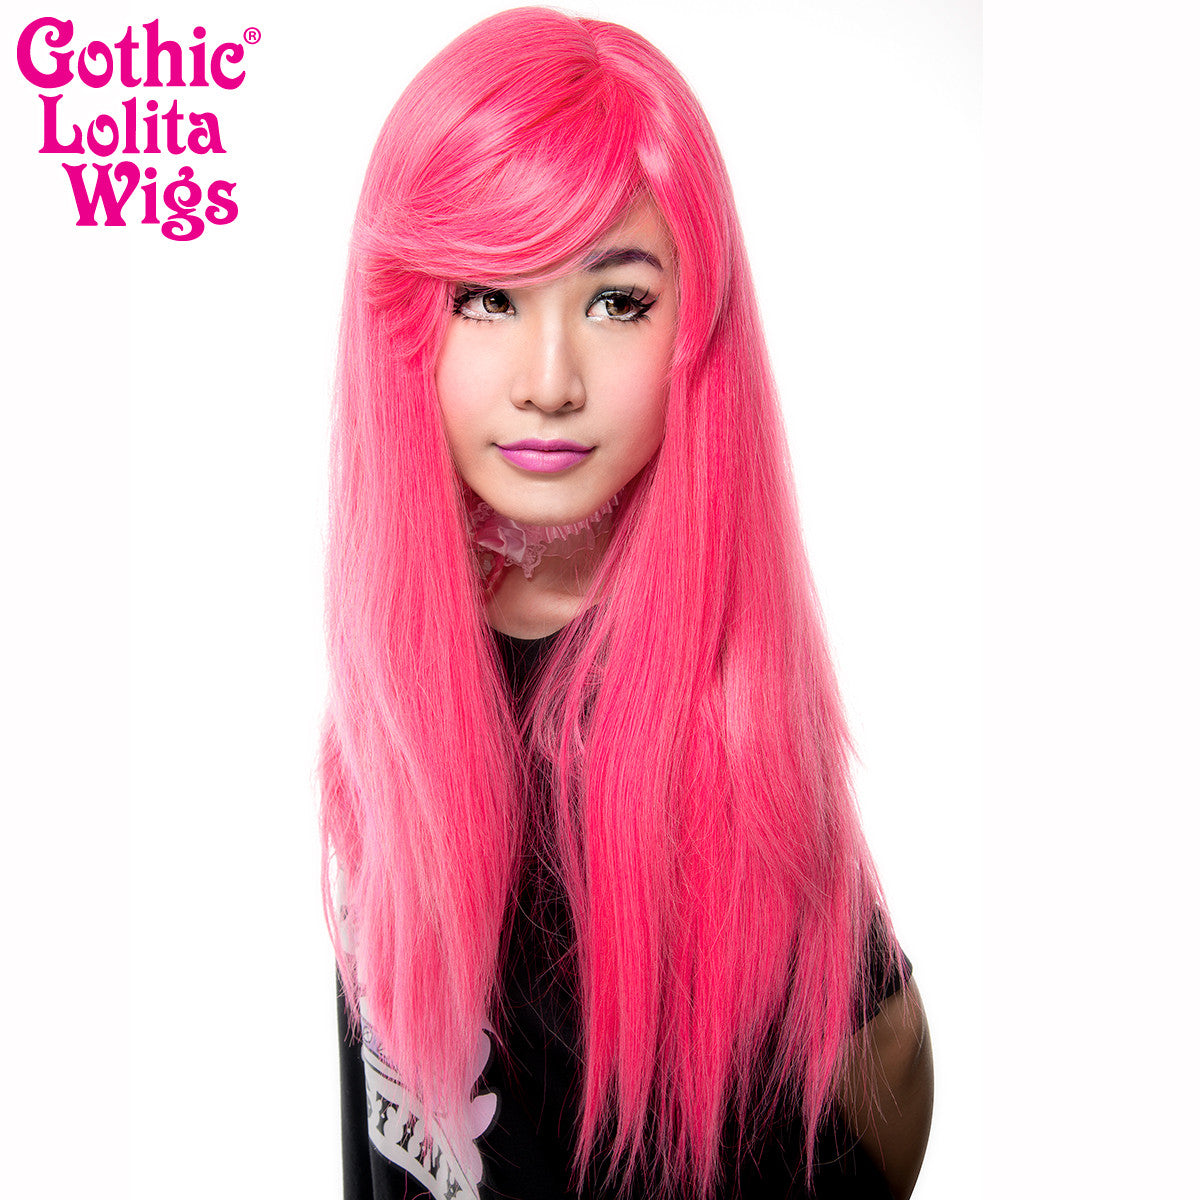 Gothic Lolita Wigs® <br> Bella™ Collection - Atomic Hot Pink -00677